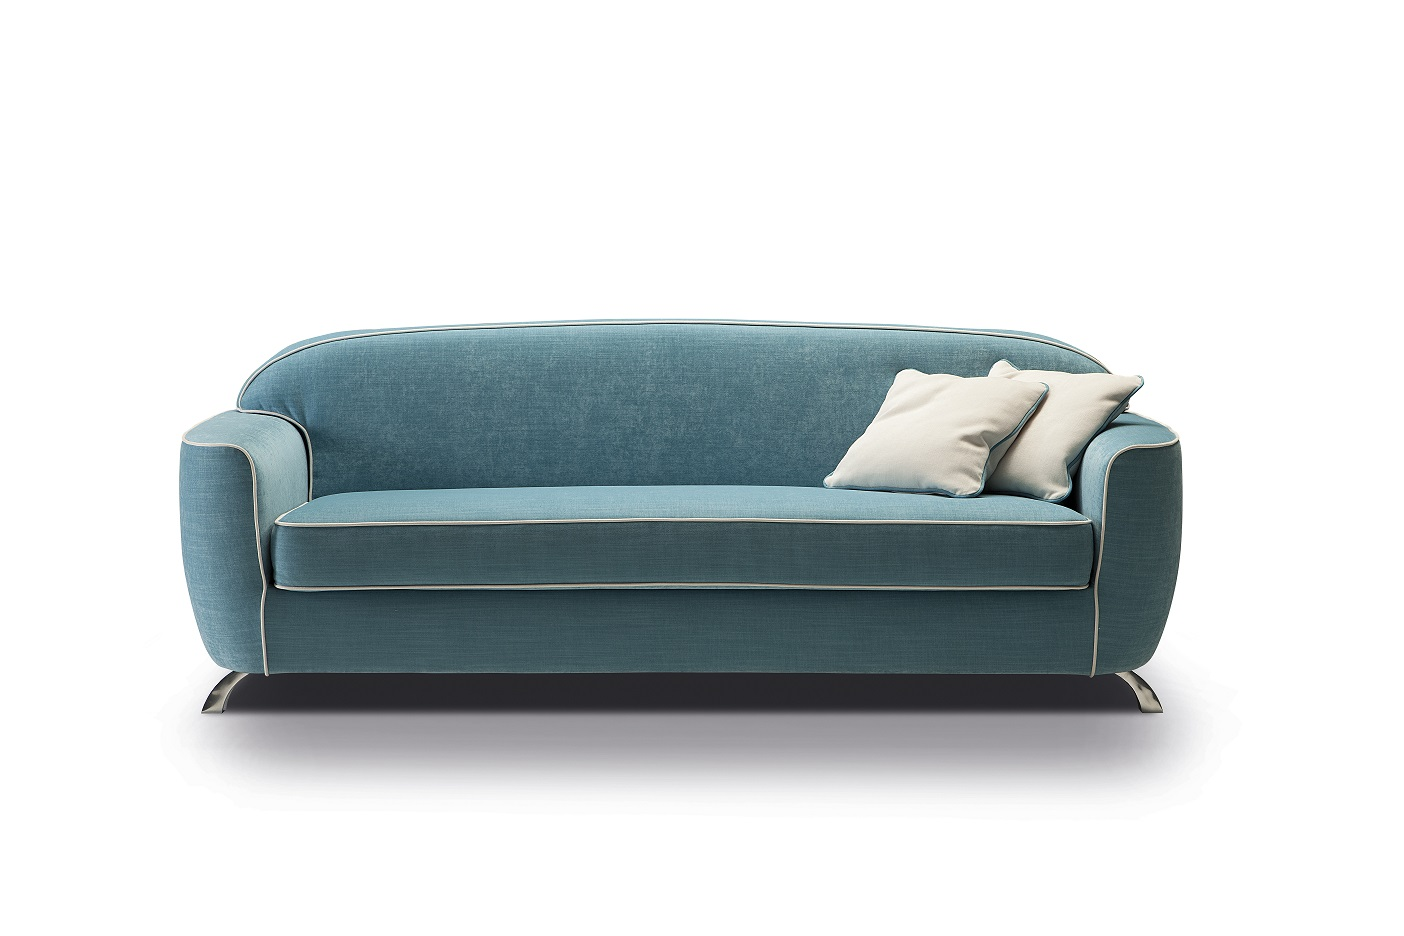 Canap convertible paris royal sofa id e de canap et for Canape pas cher paris